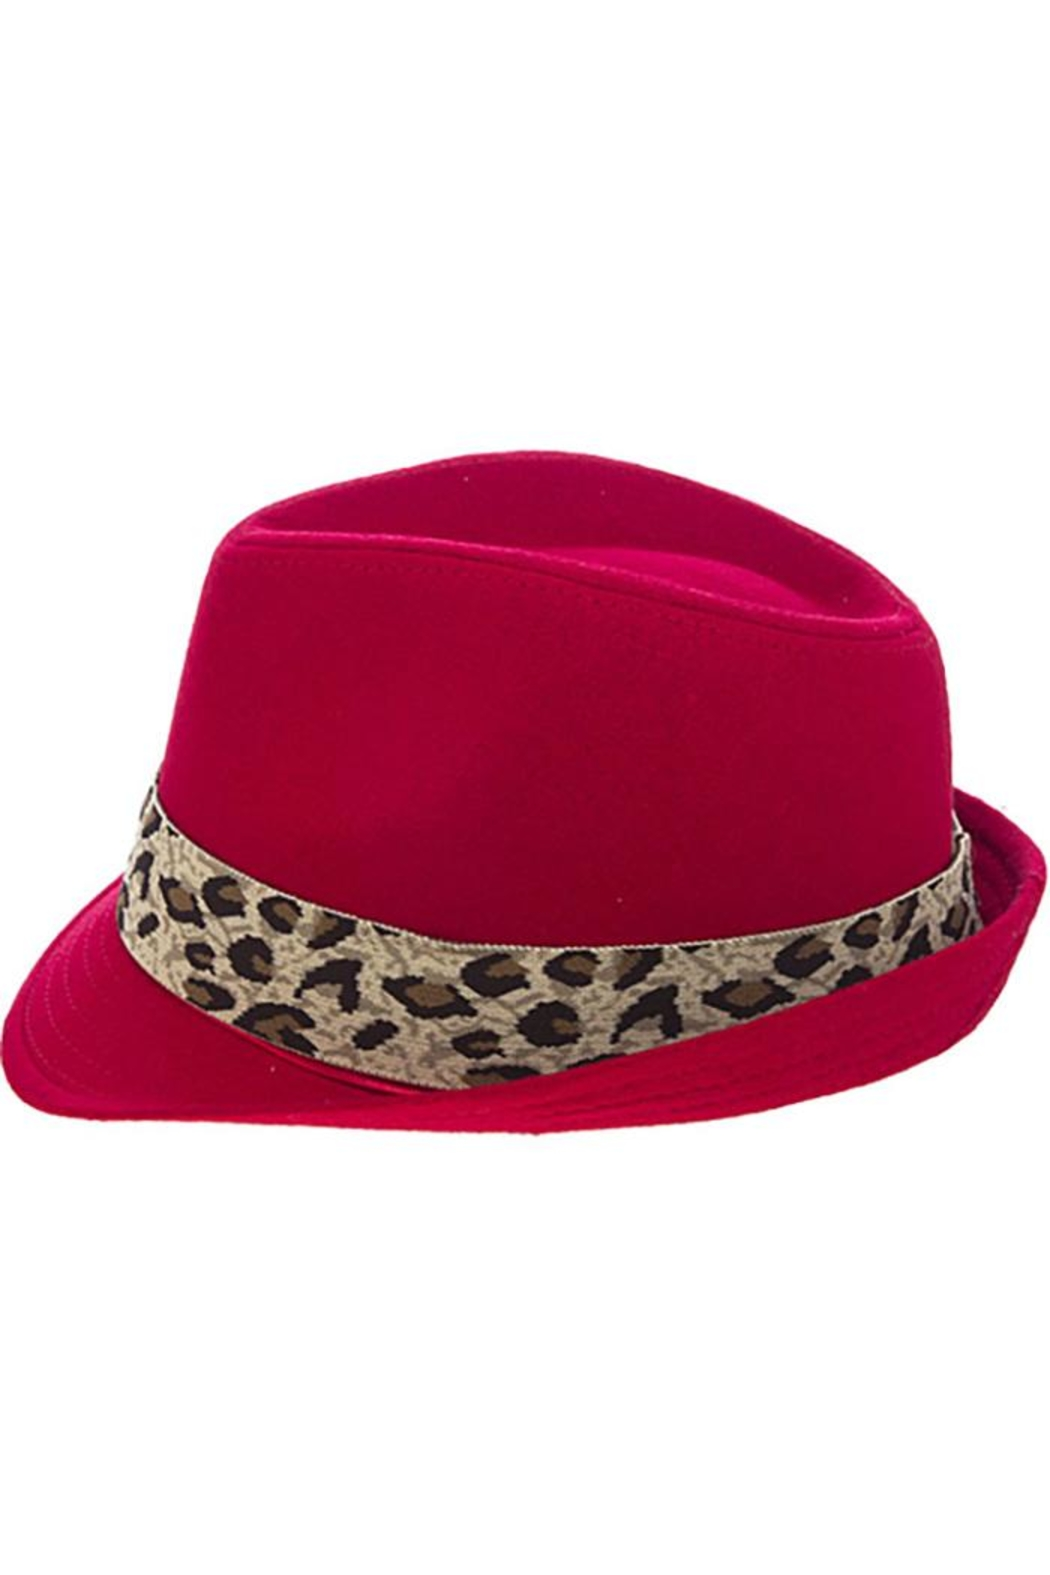 The Hatter Company Leopard Print Band-Fedora - Front Full Image